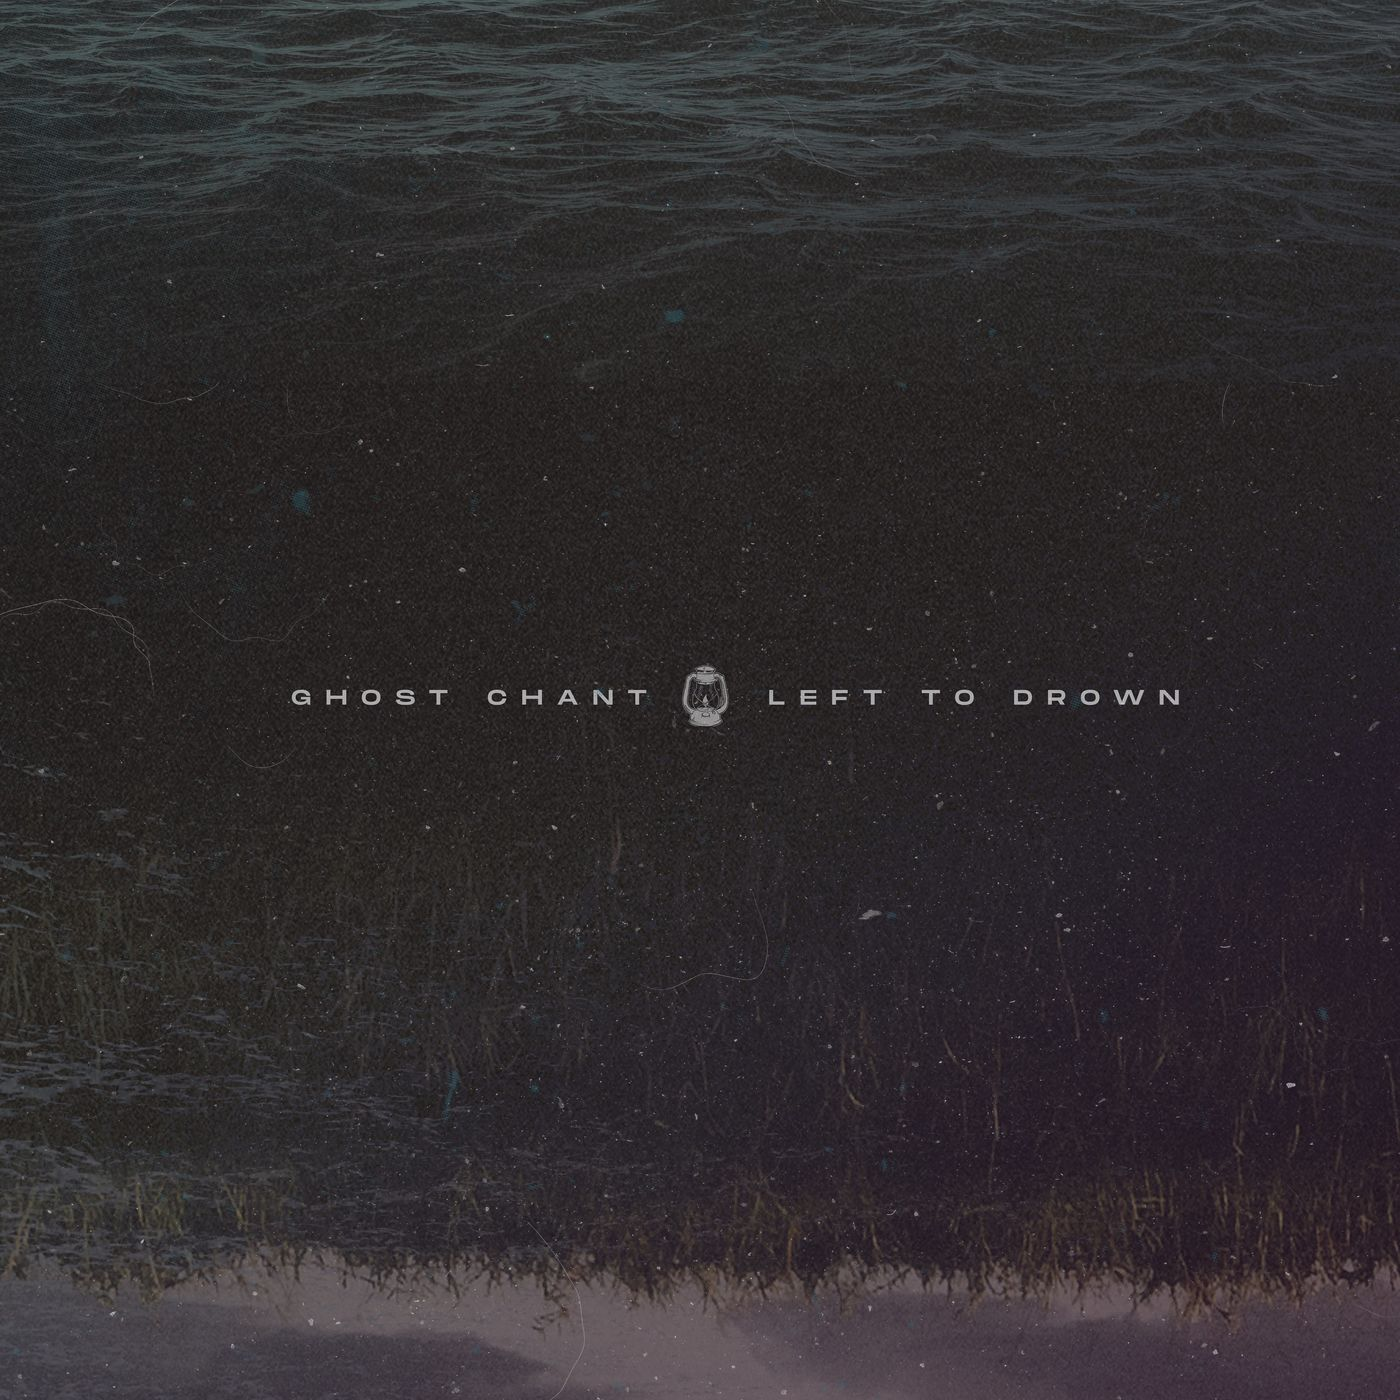 Ghost Chant - Left to Drown [EP] (2020)